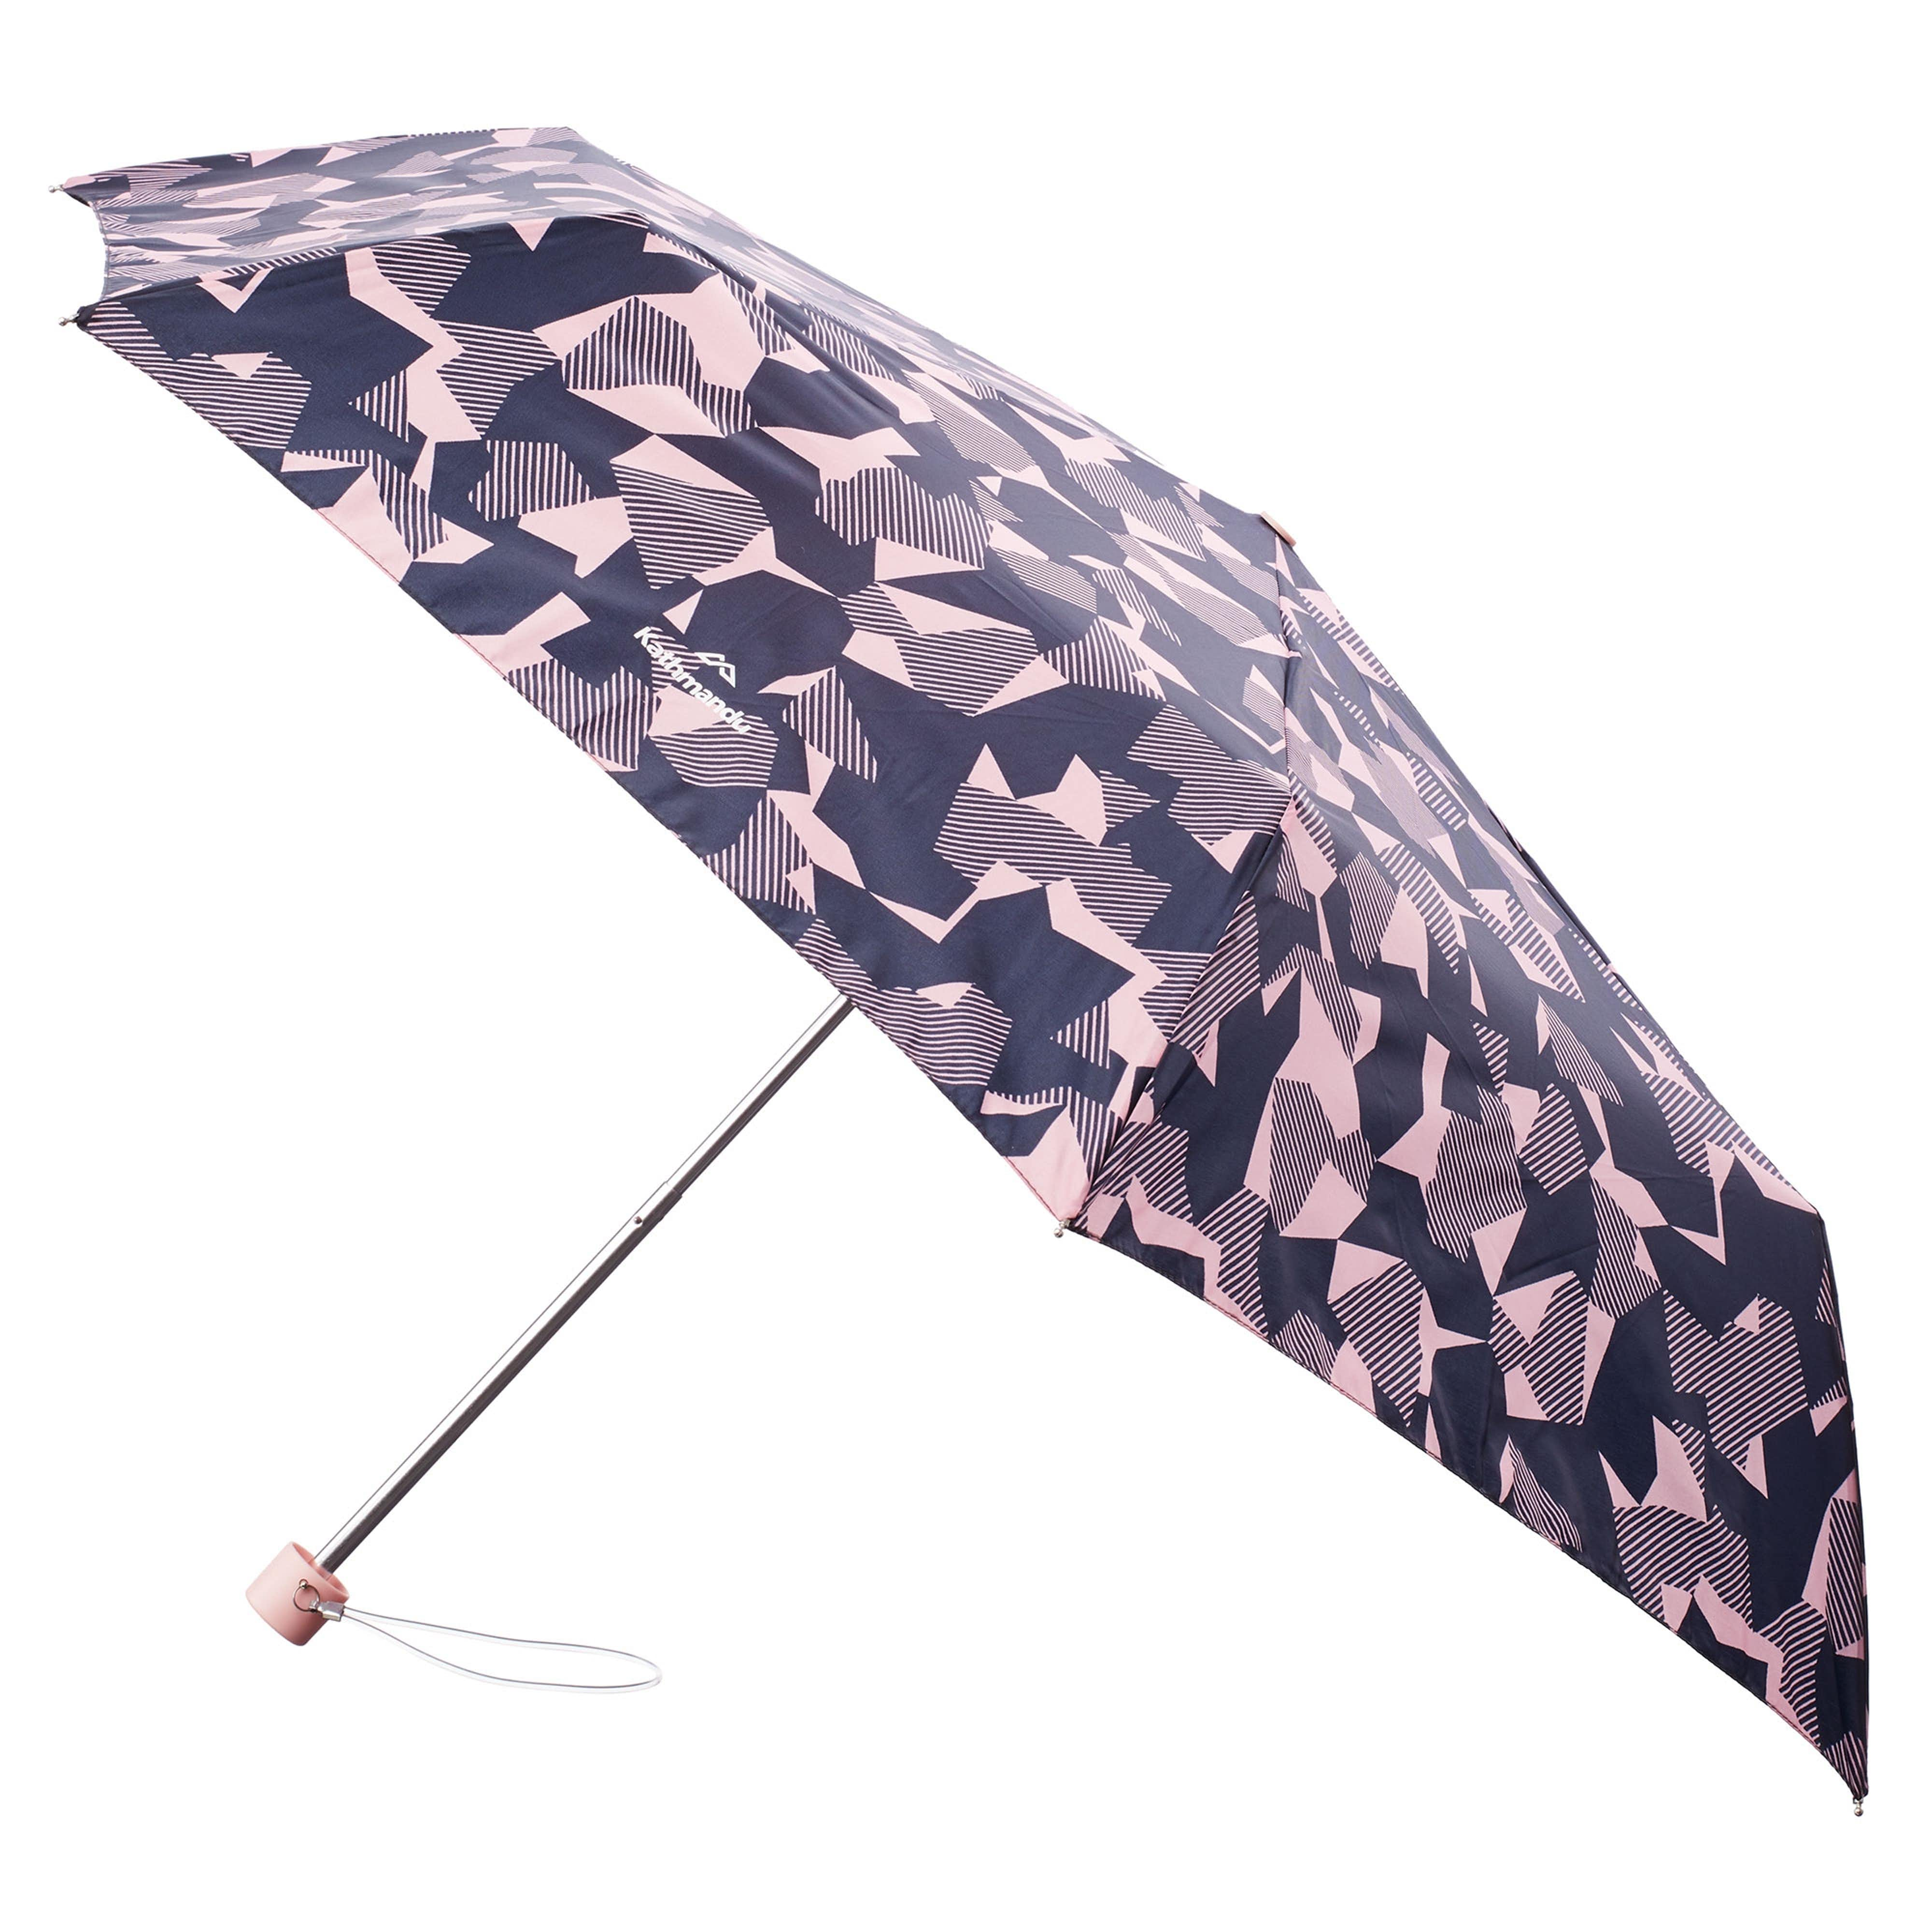 bbf70fe7cce98 Travel Umbrella v3 - Teal Blue